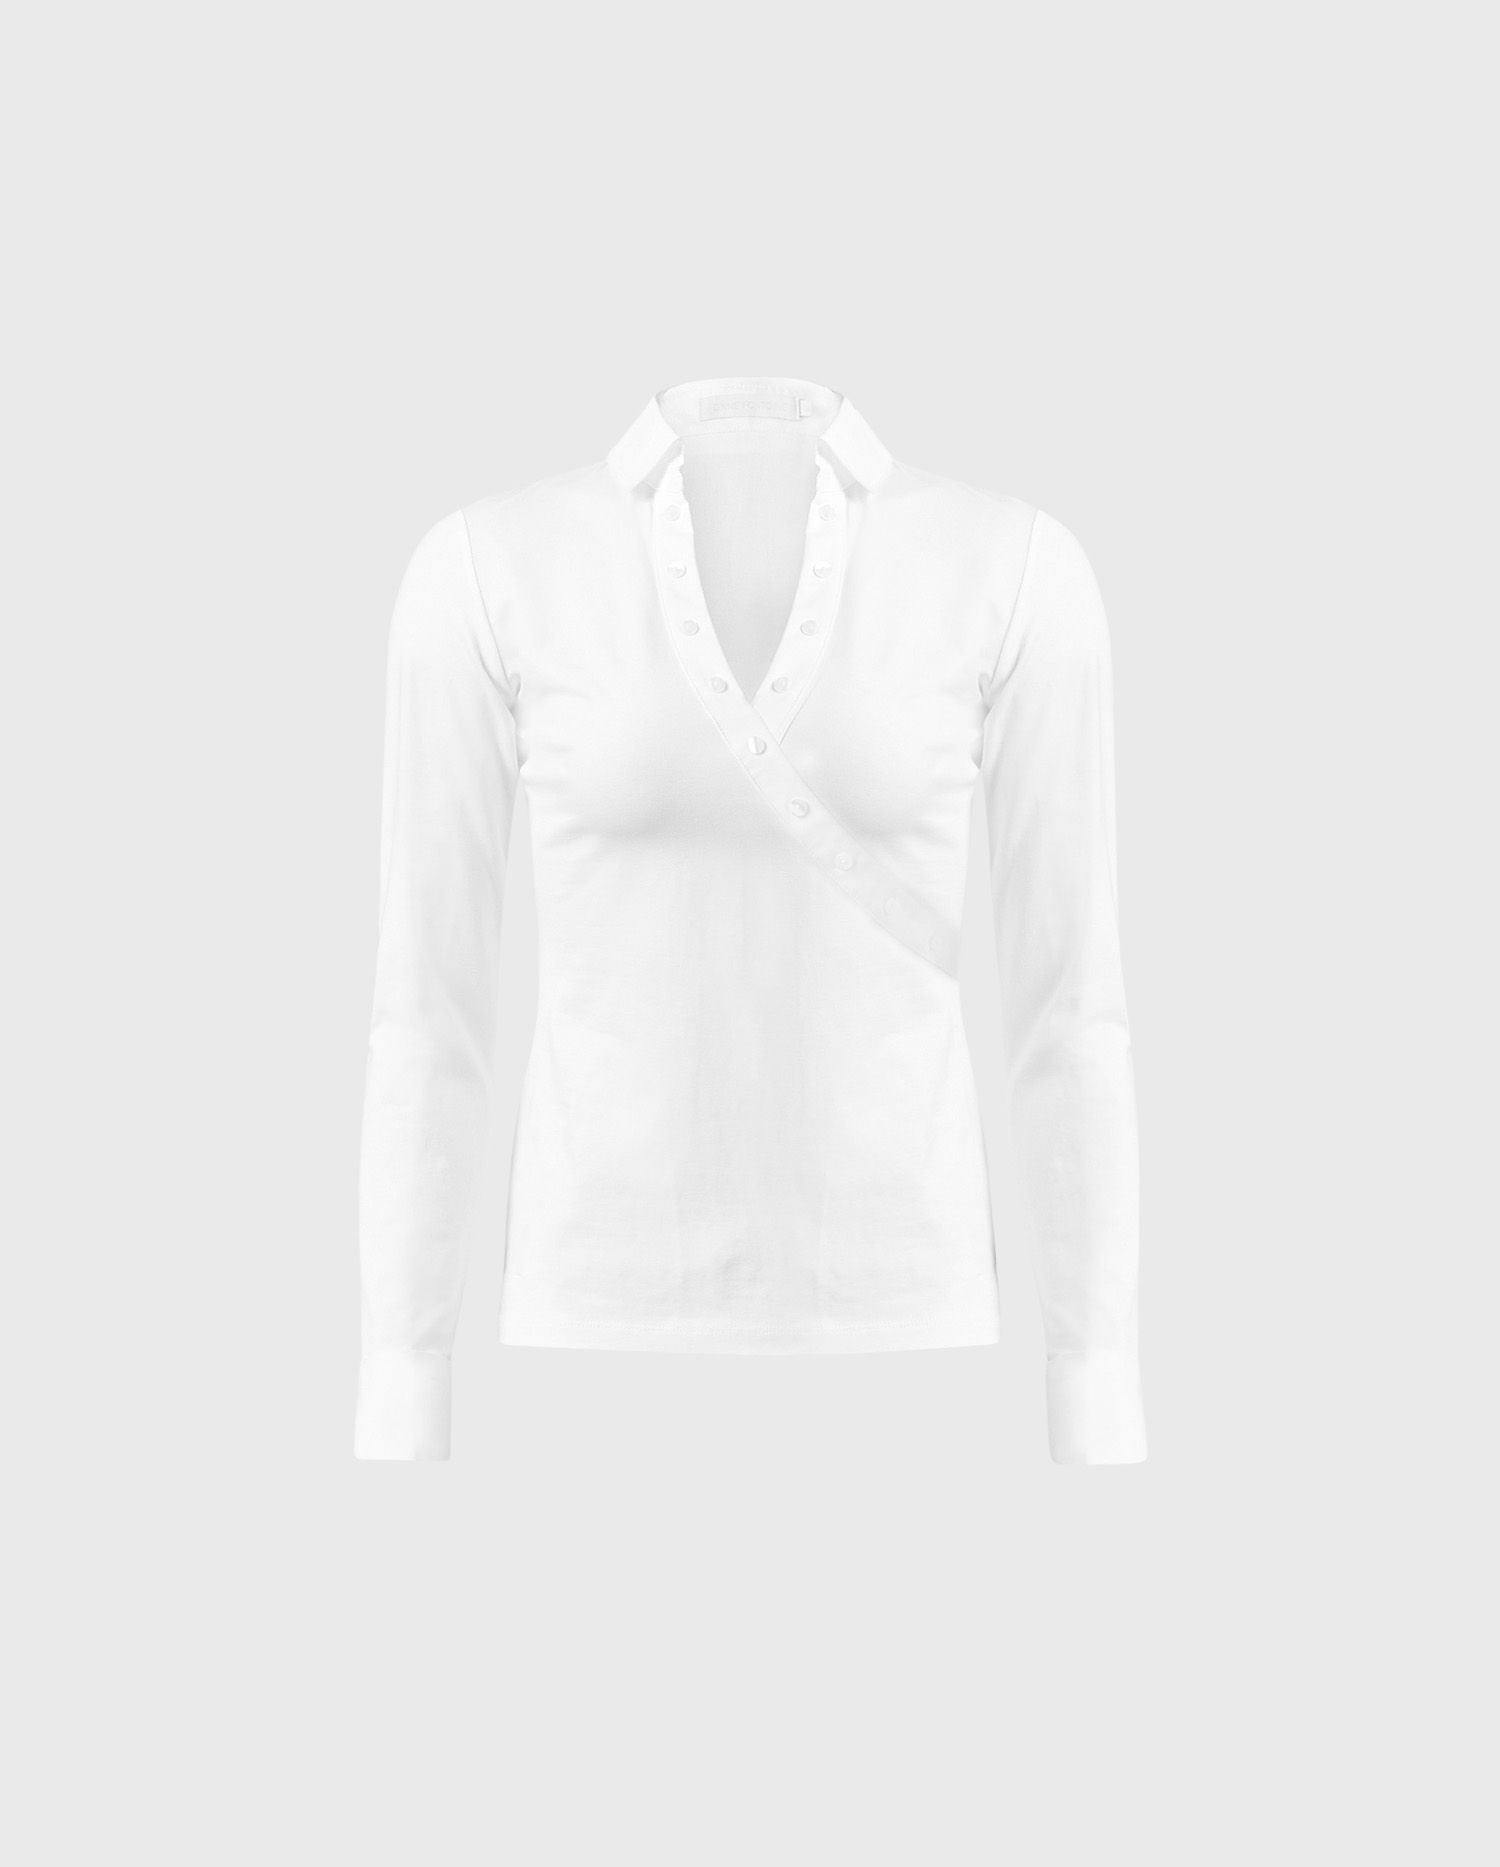 The VOLTA white shirt is the perfect staple to building your Parisian chic style.